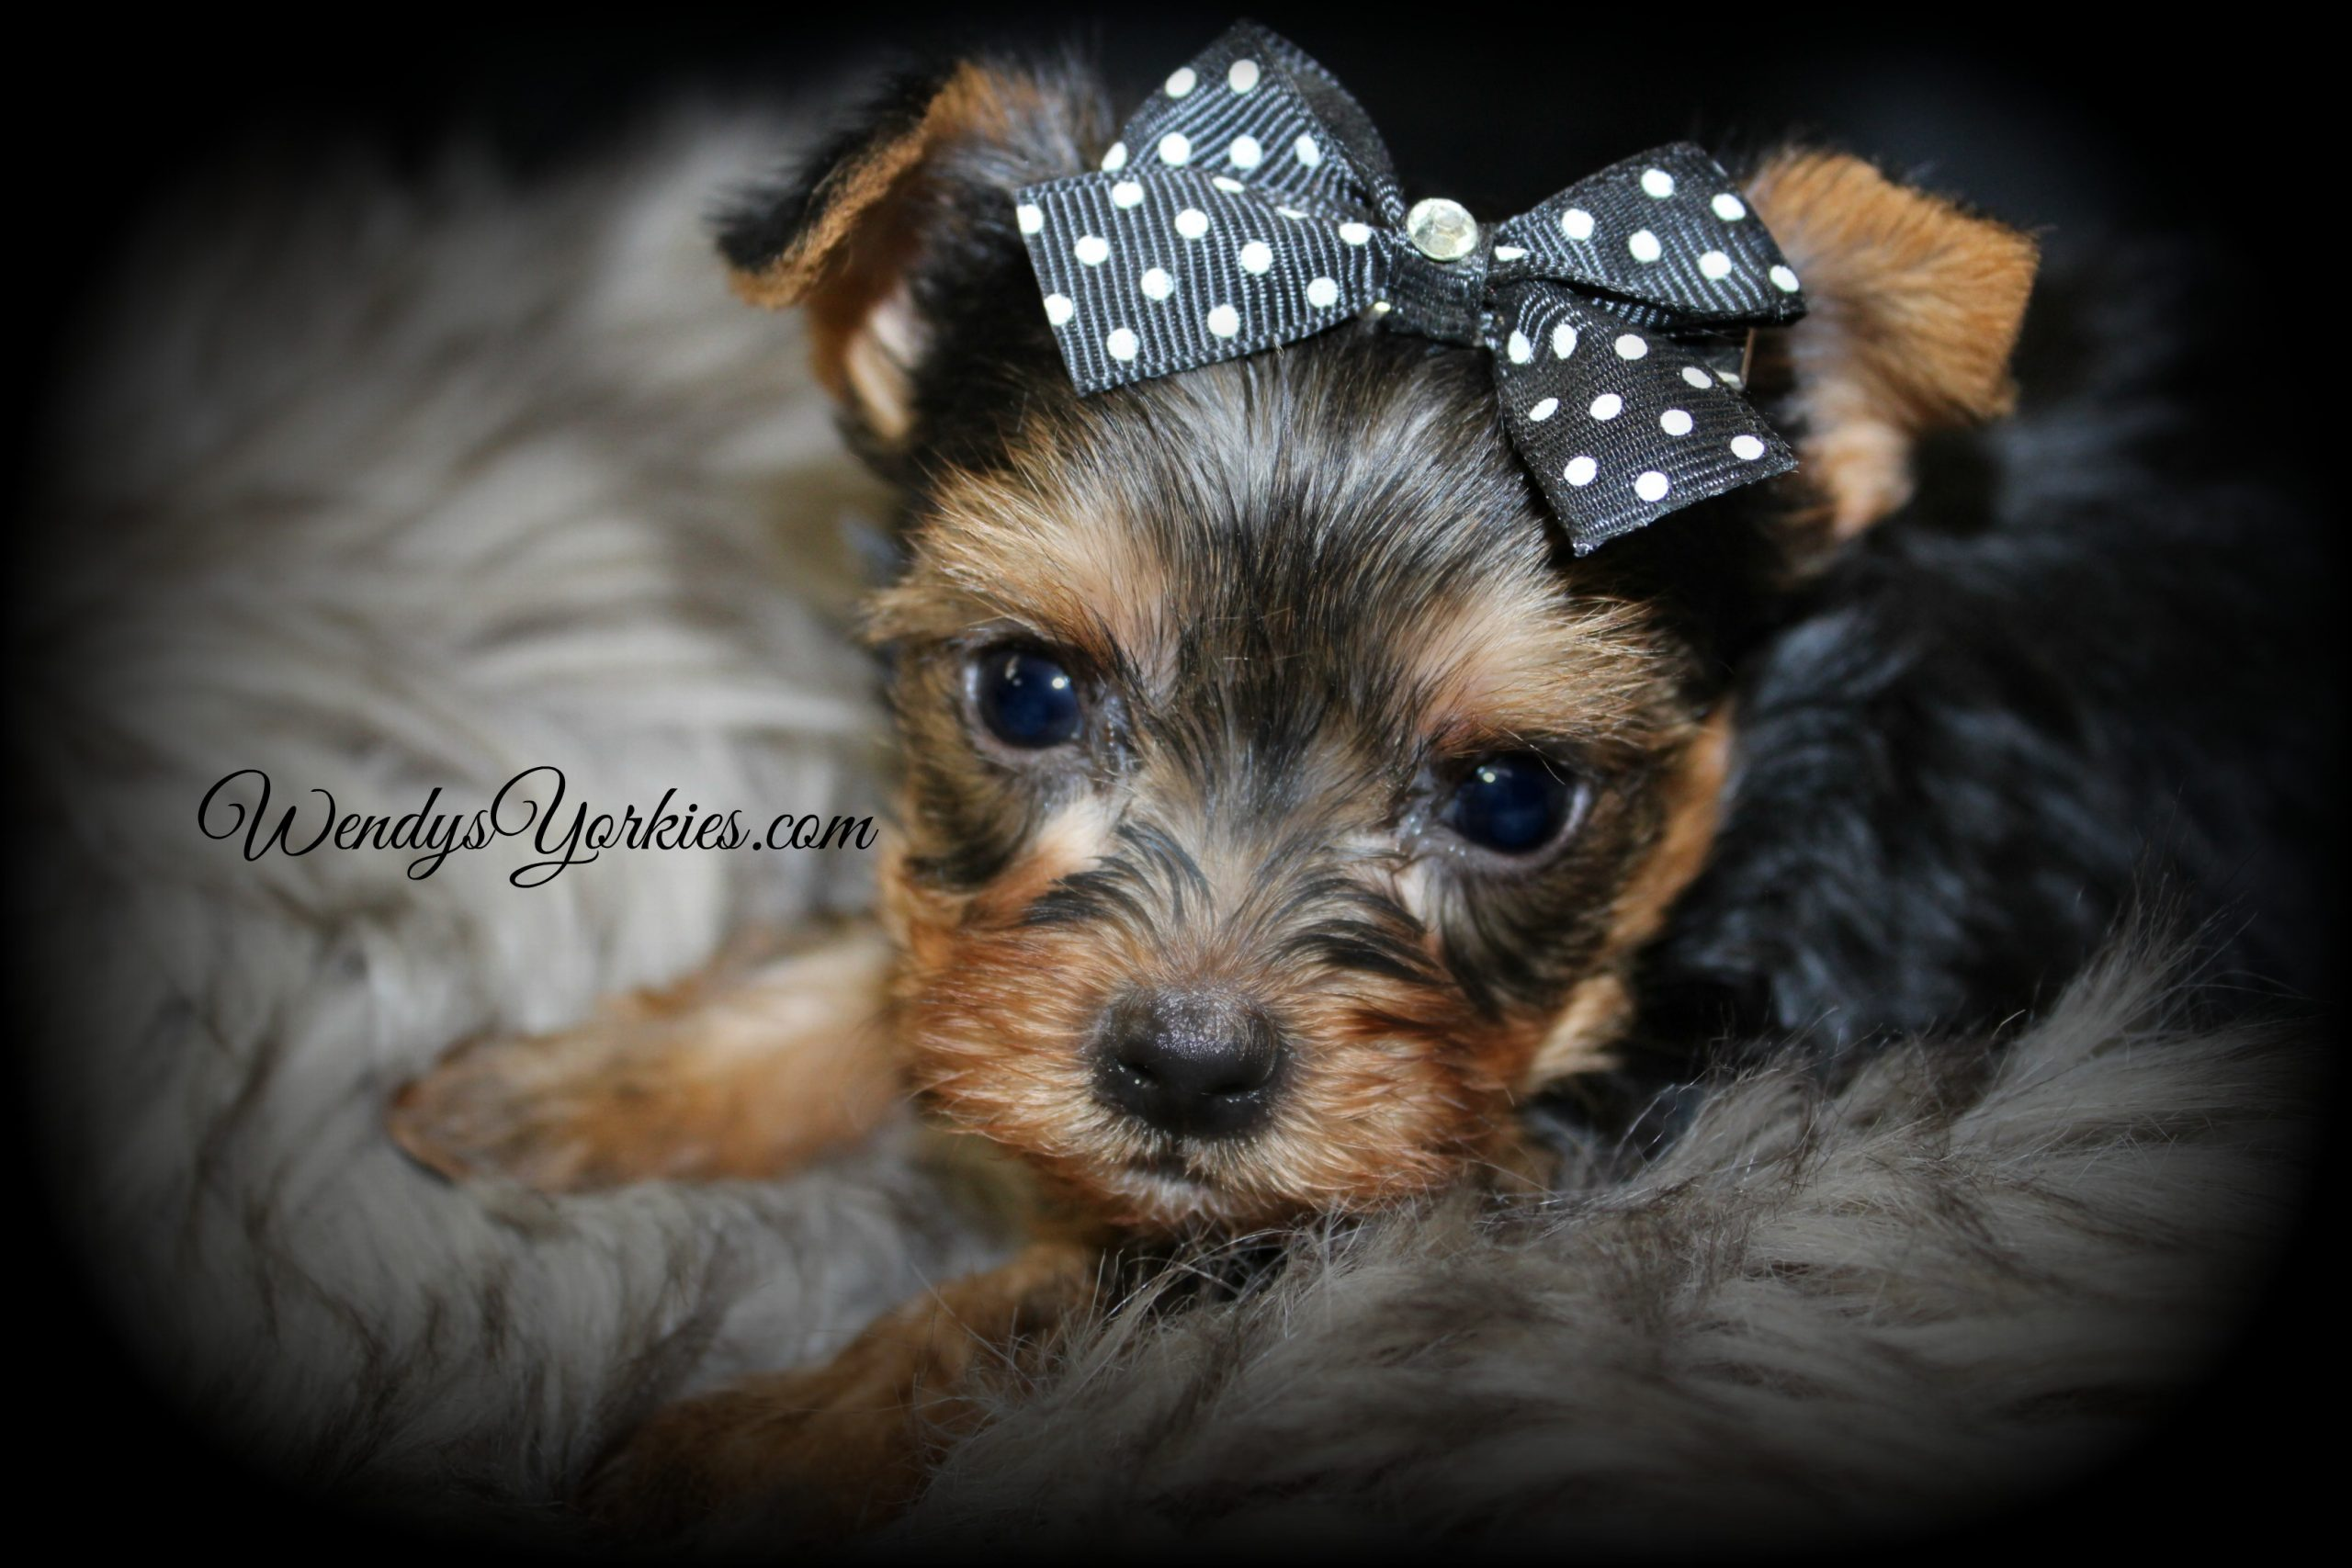 Teacup Male Yorkie puppy, Grace m2, WendysYorkies.com